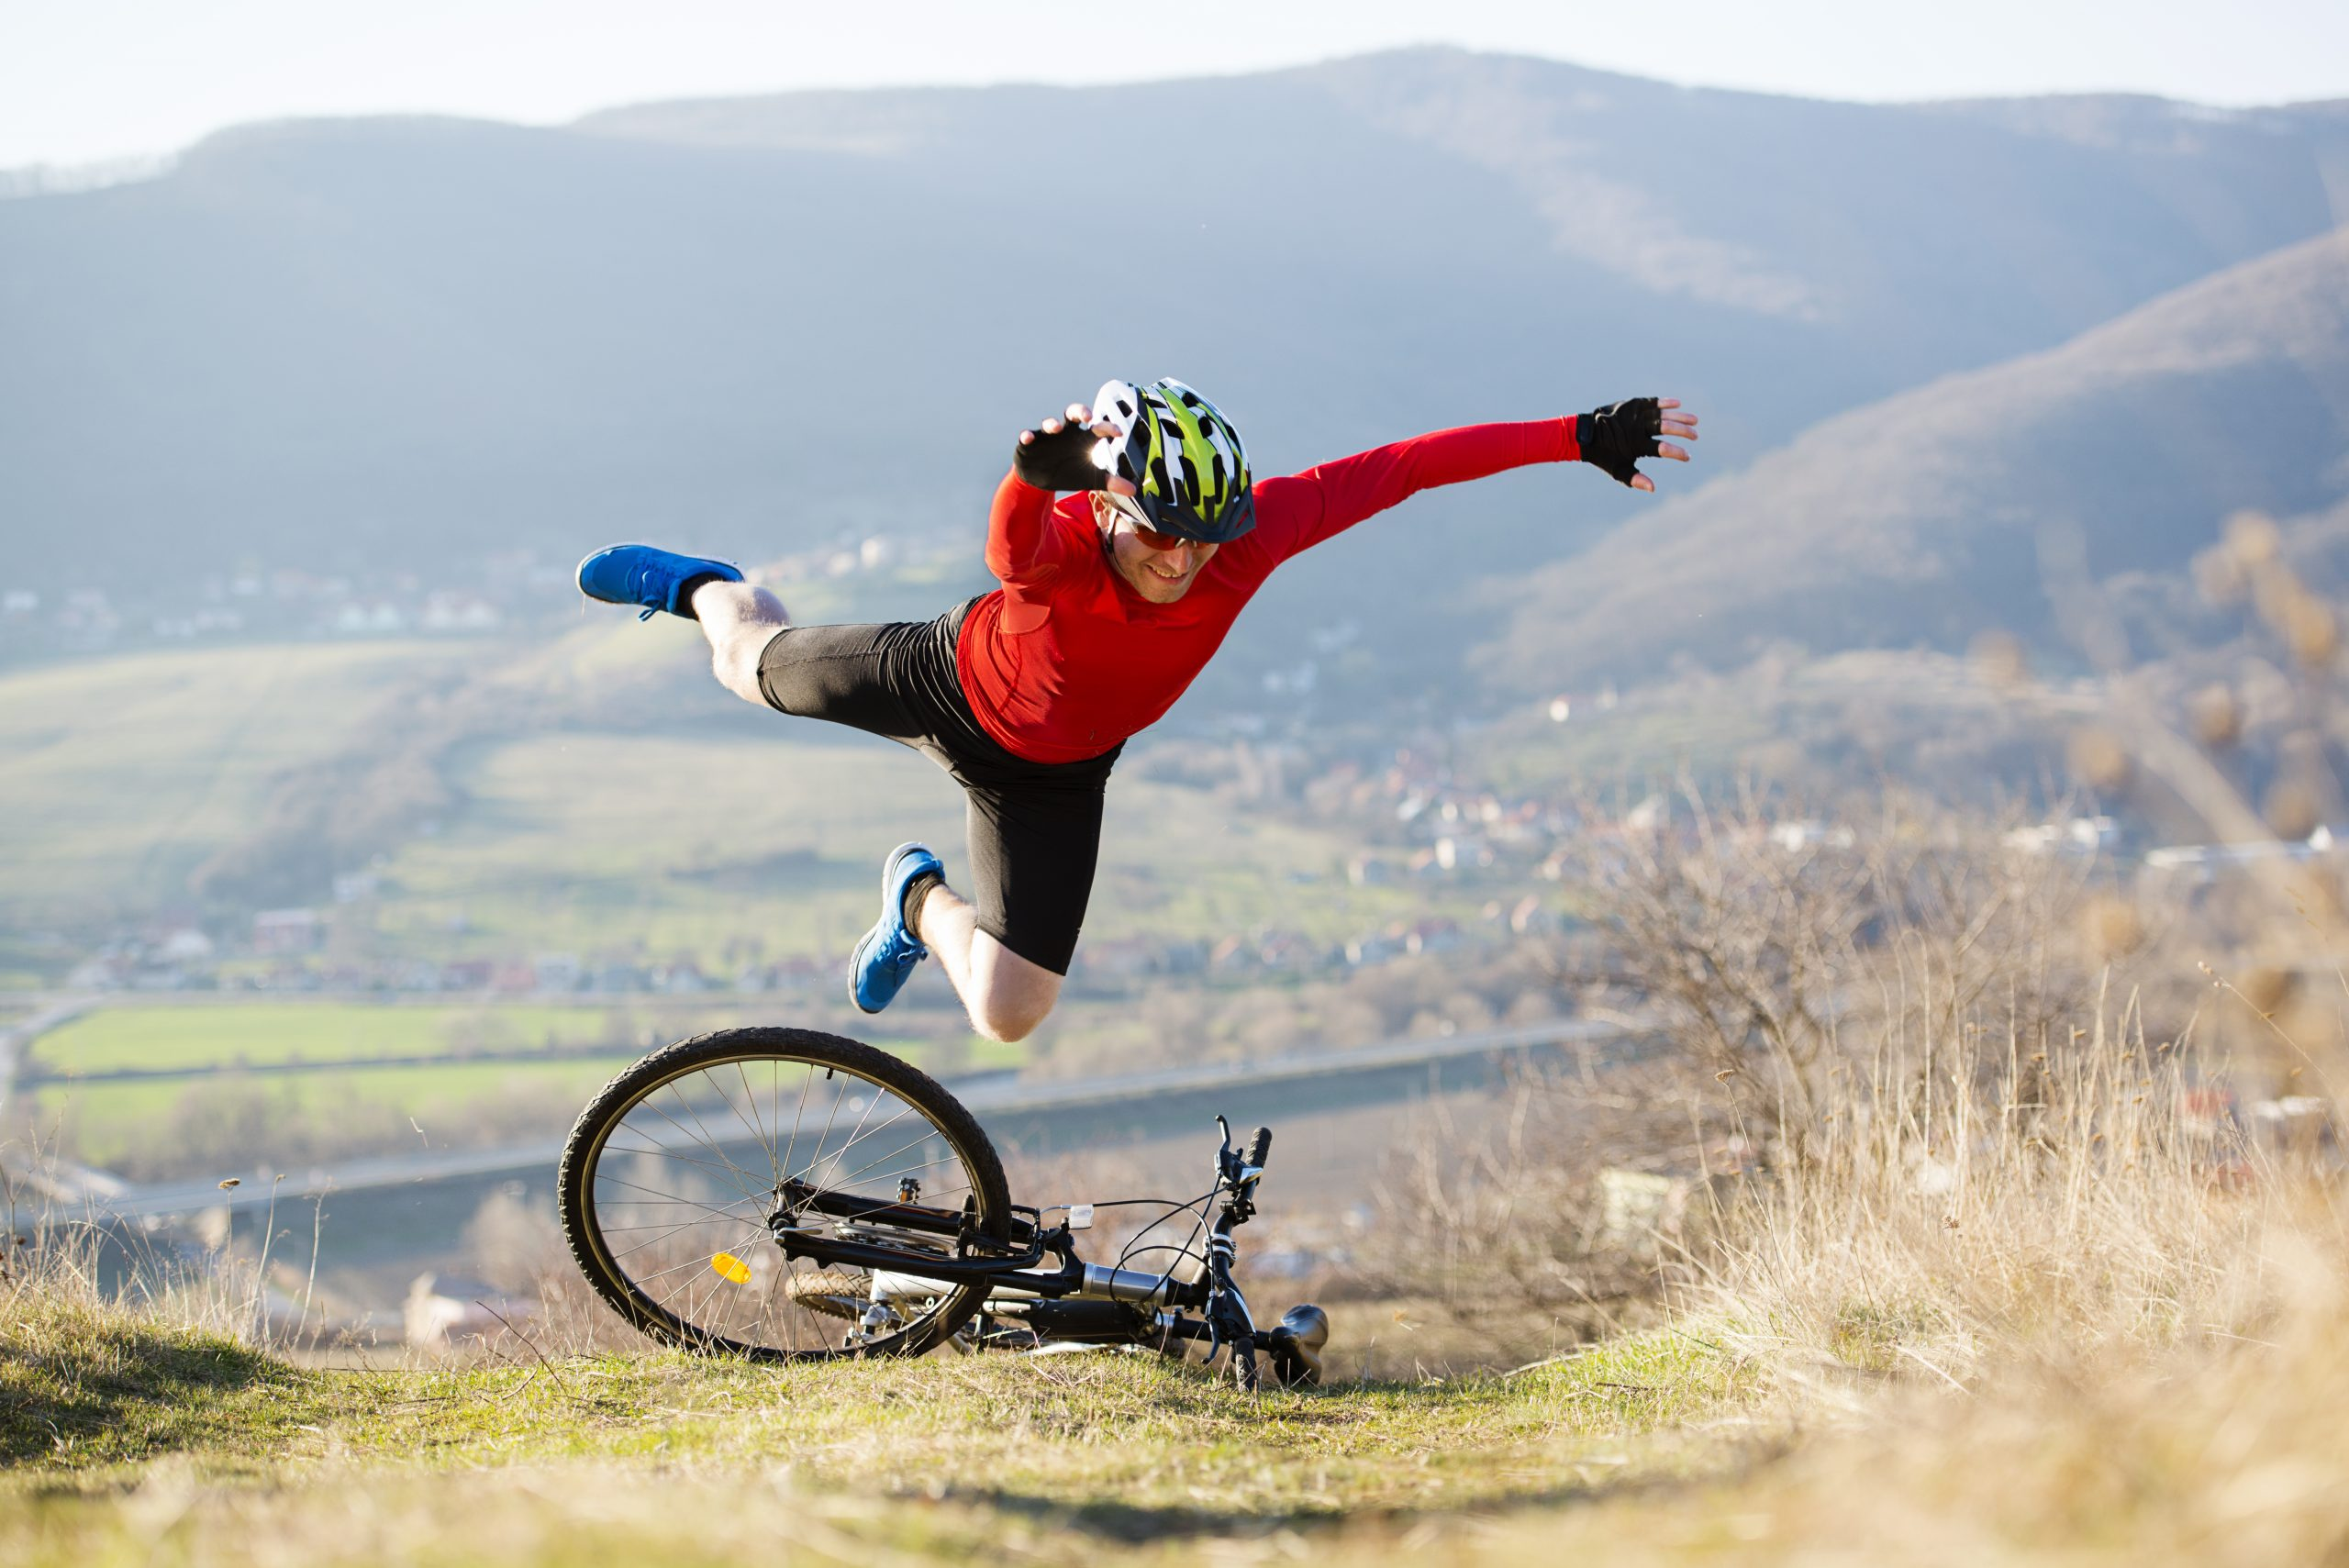 Who Is Responsible If a Road Hazard Caused My Bicycle Accident?